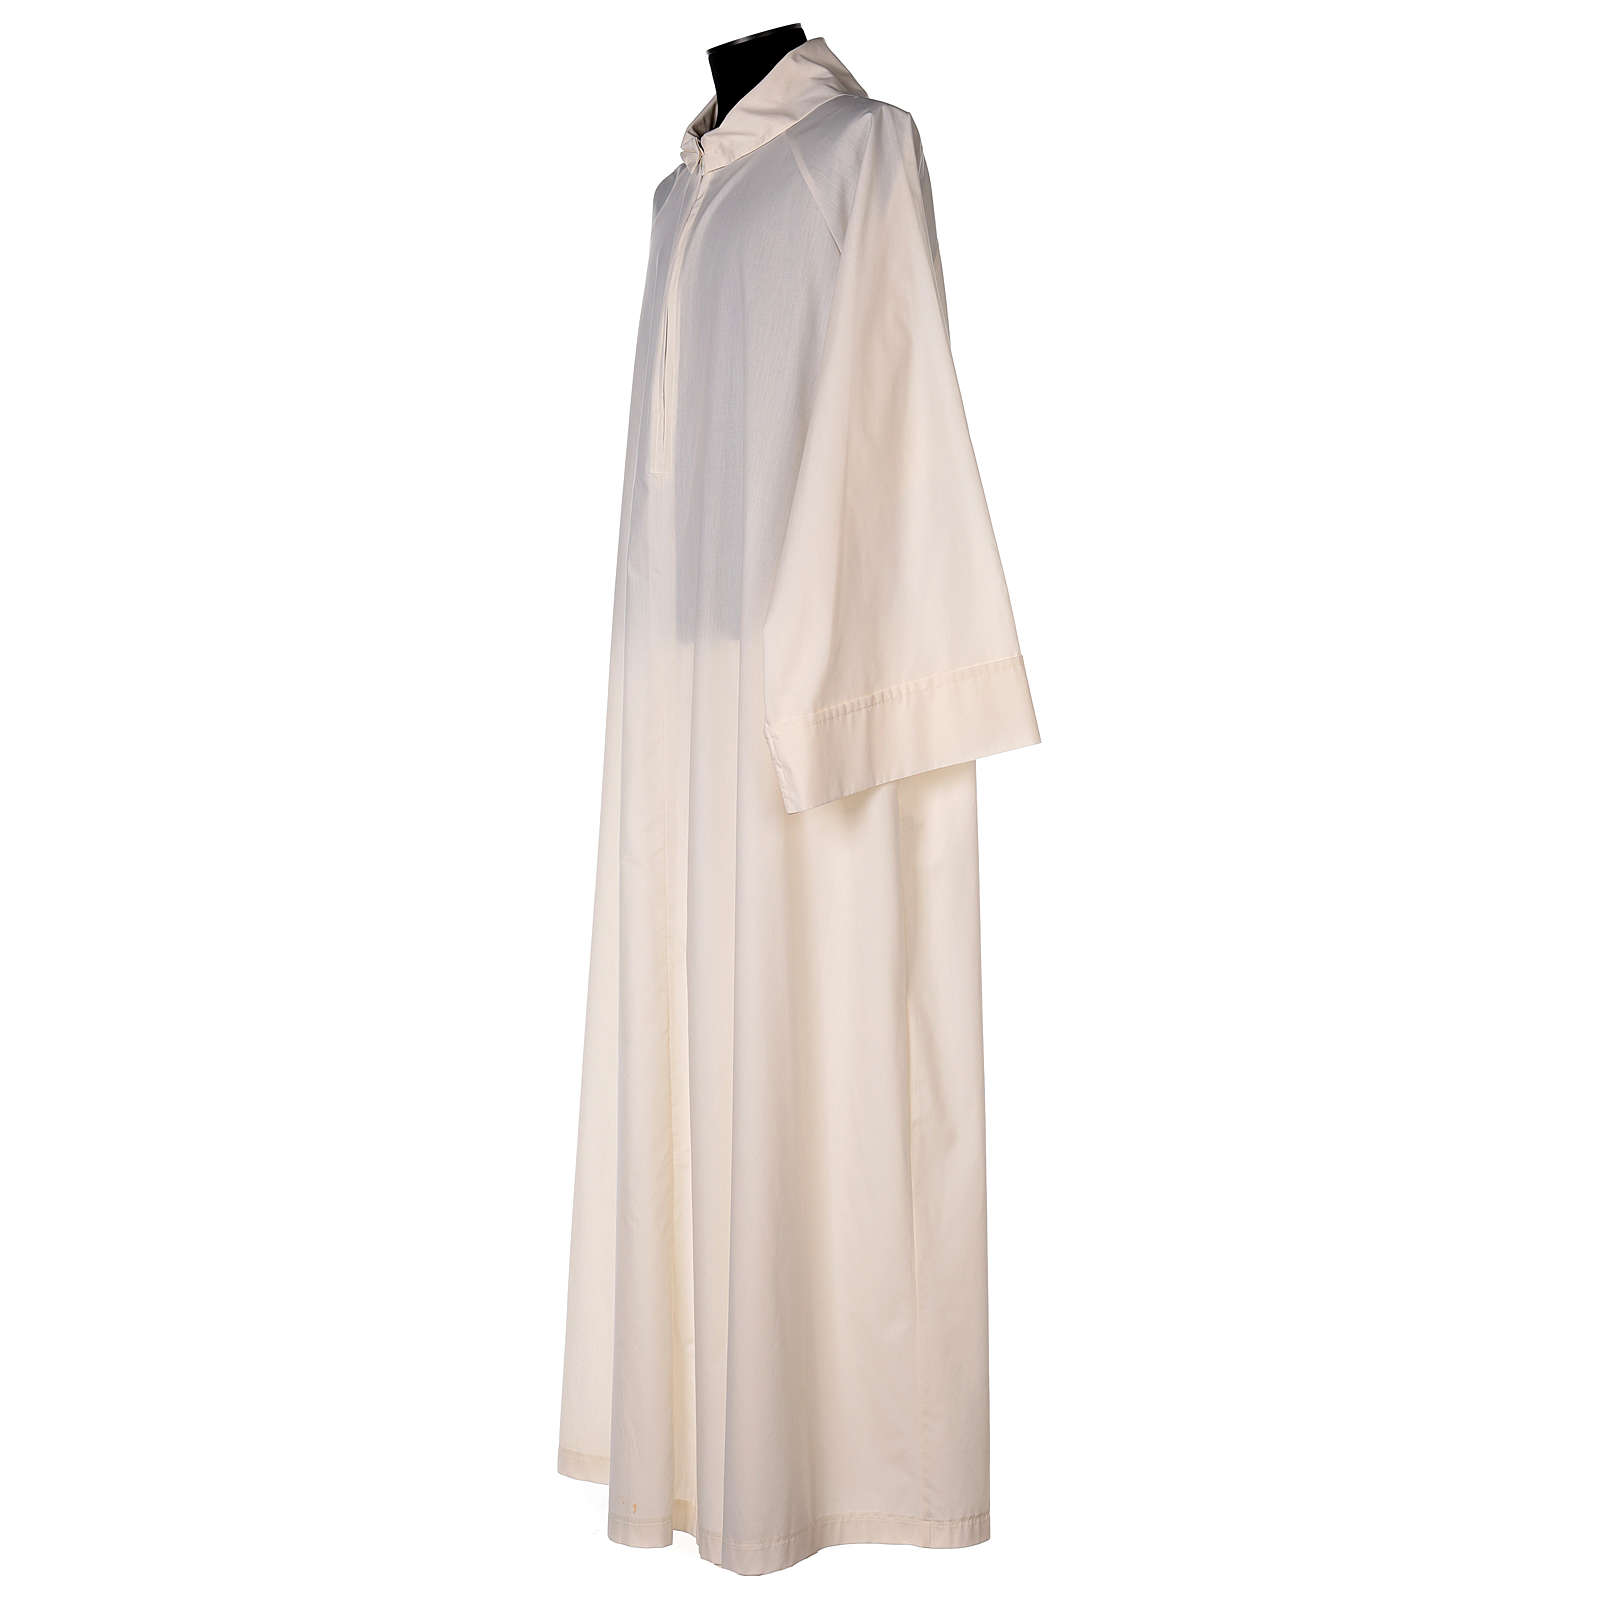 Priest alb in cotton polyester, flared in ivory with false hood 4